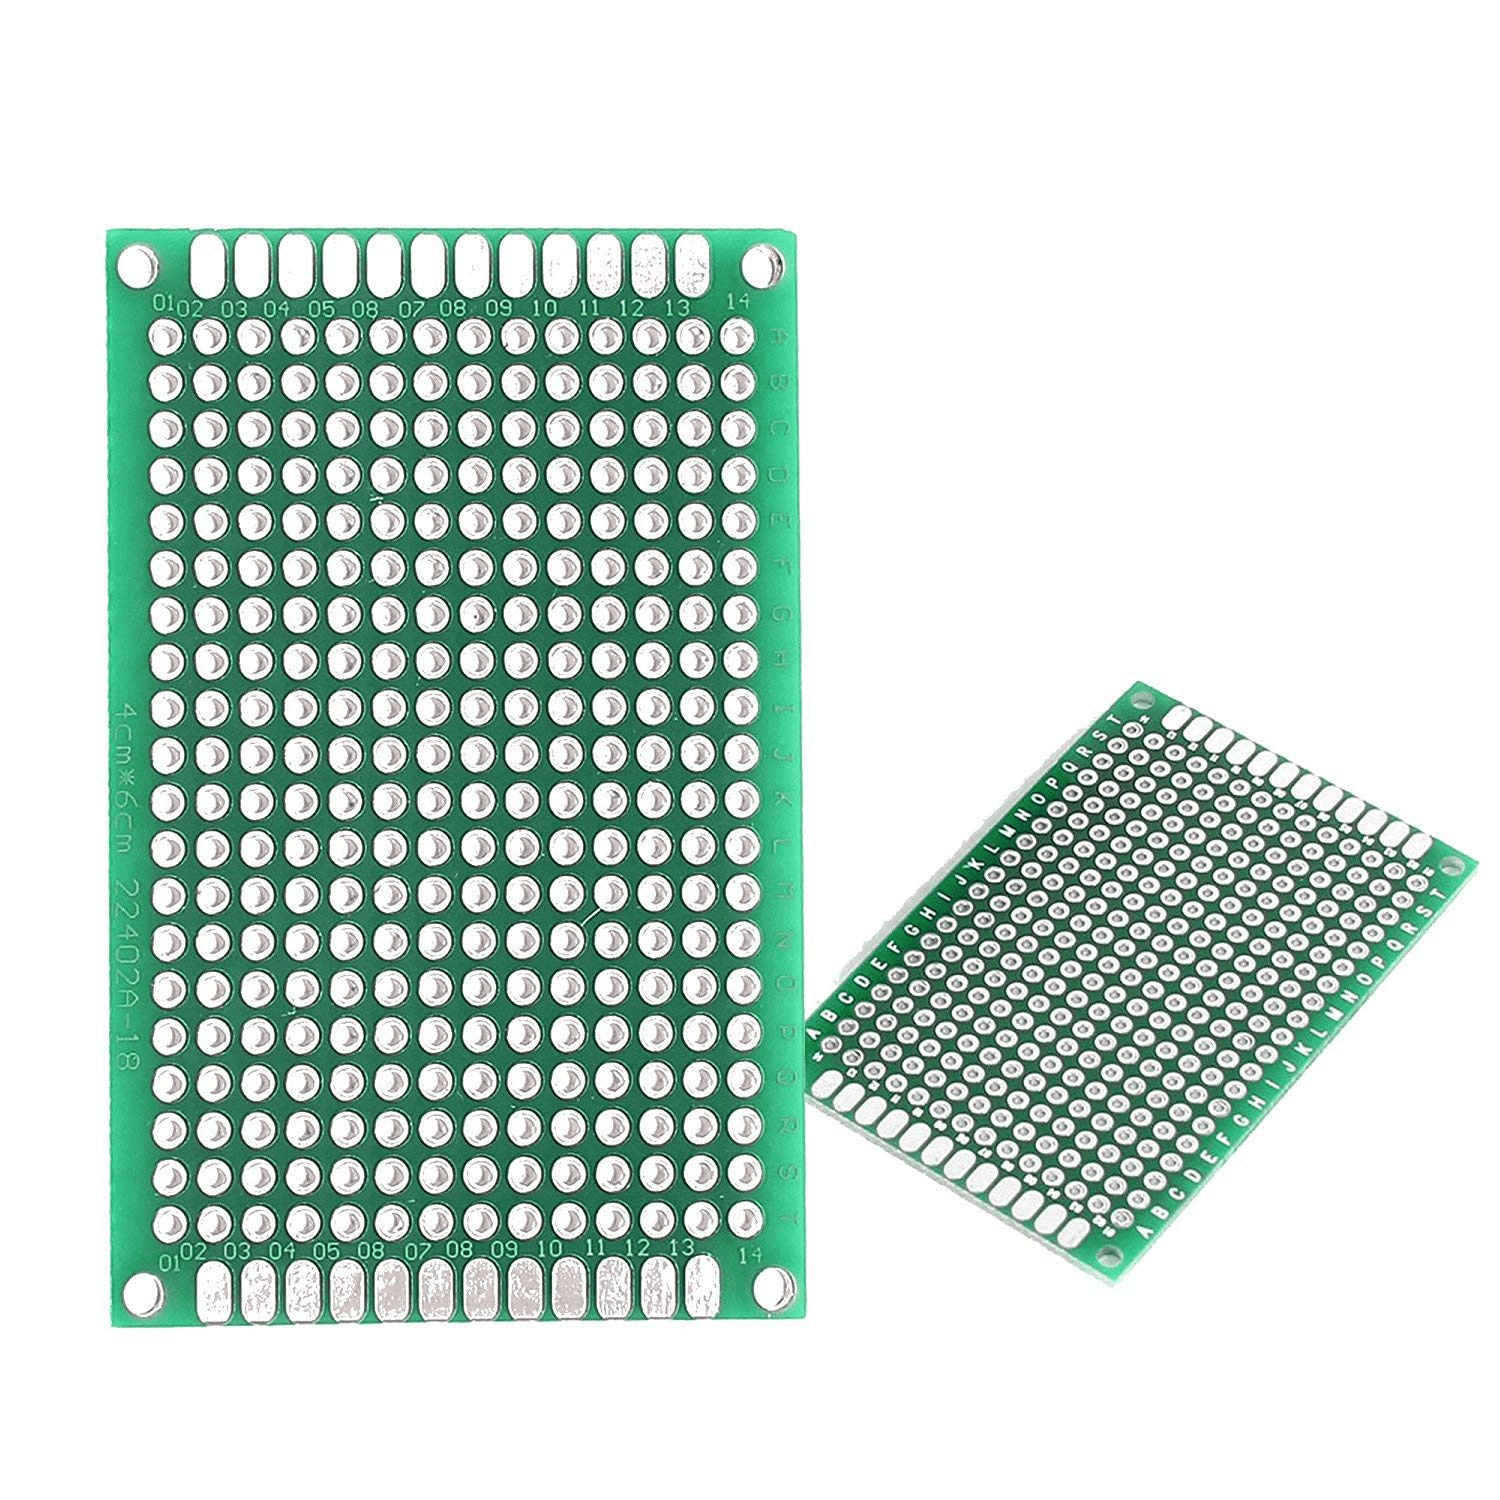 PCB Prototype manufacturers: 3 Best Ways to Balance Cost and Quality